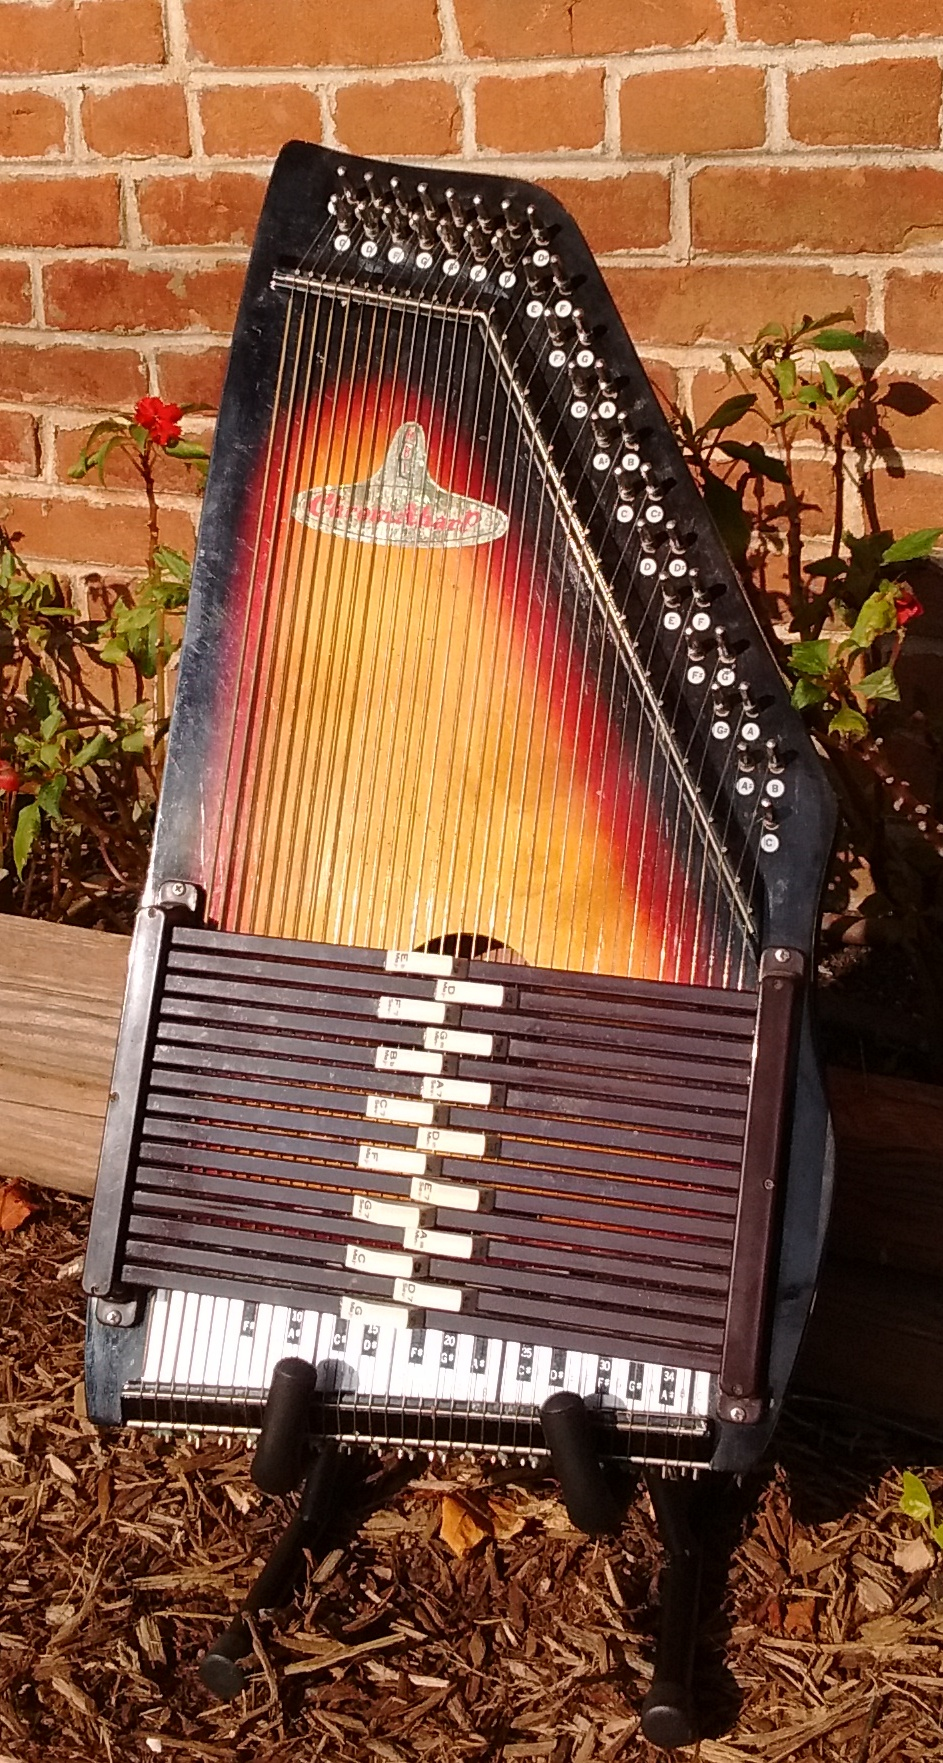 15-Chord ChromaHarp Autoharp by Rhythm Band, Inc.